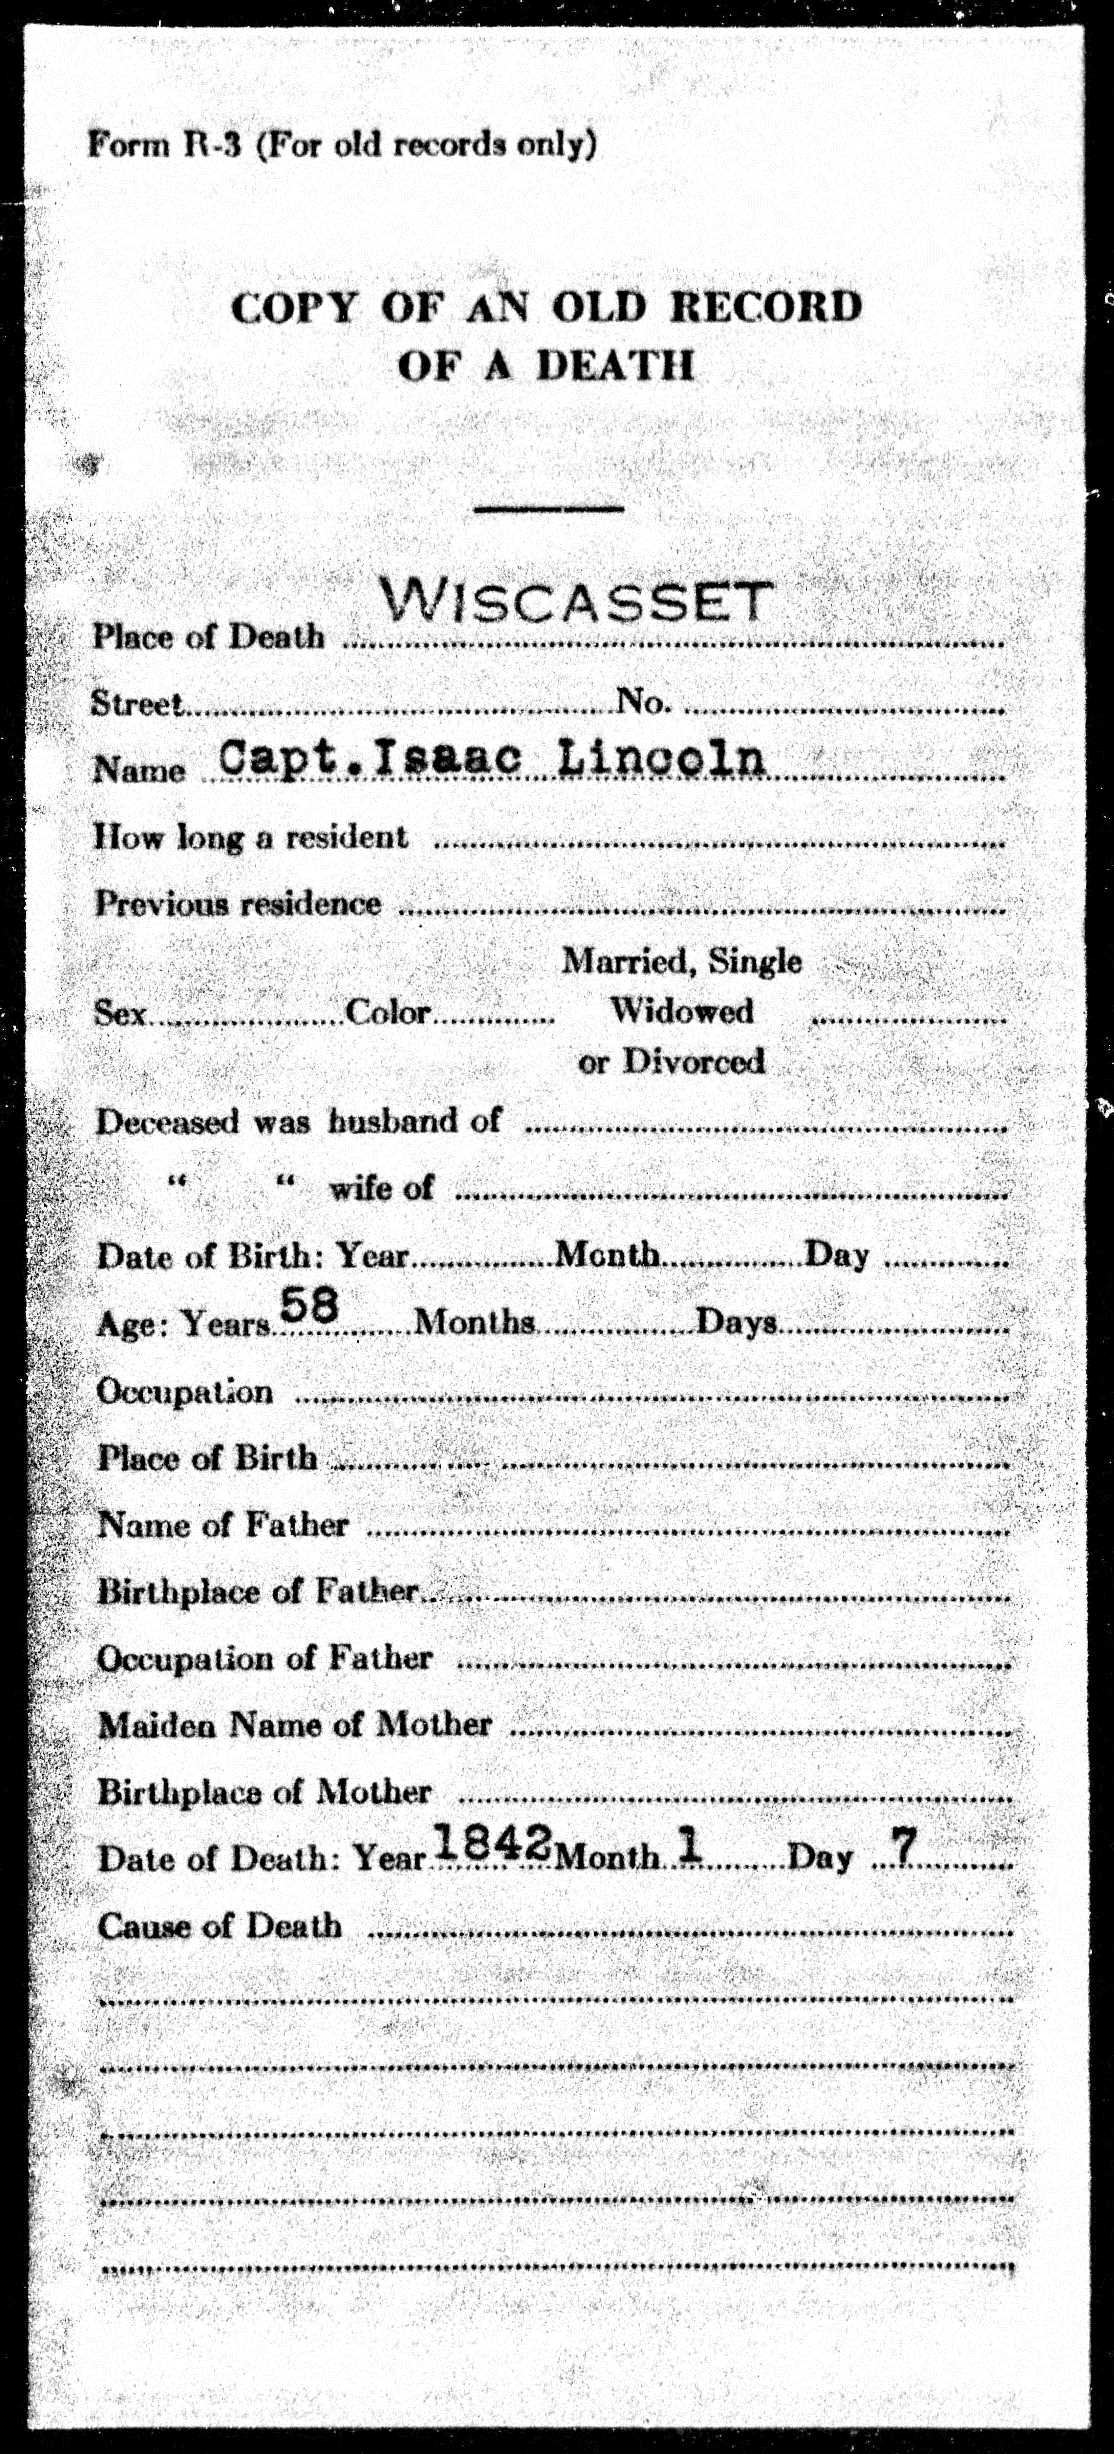 Image:Capt. Isaac Lincoln Maine Death Record 1842.jpg